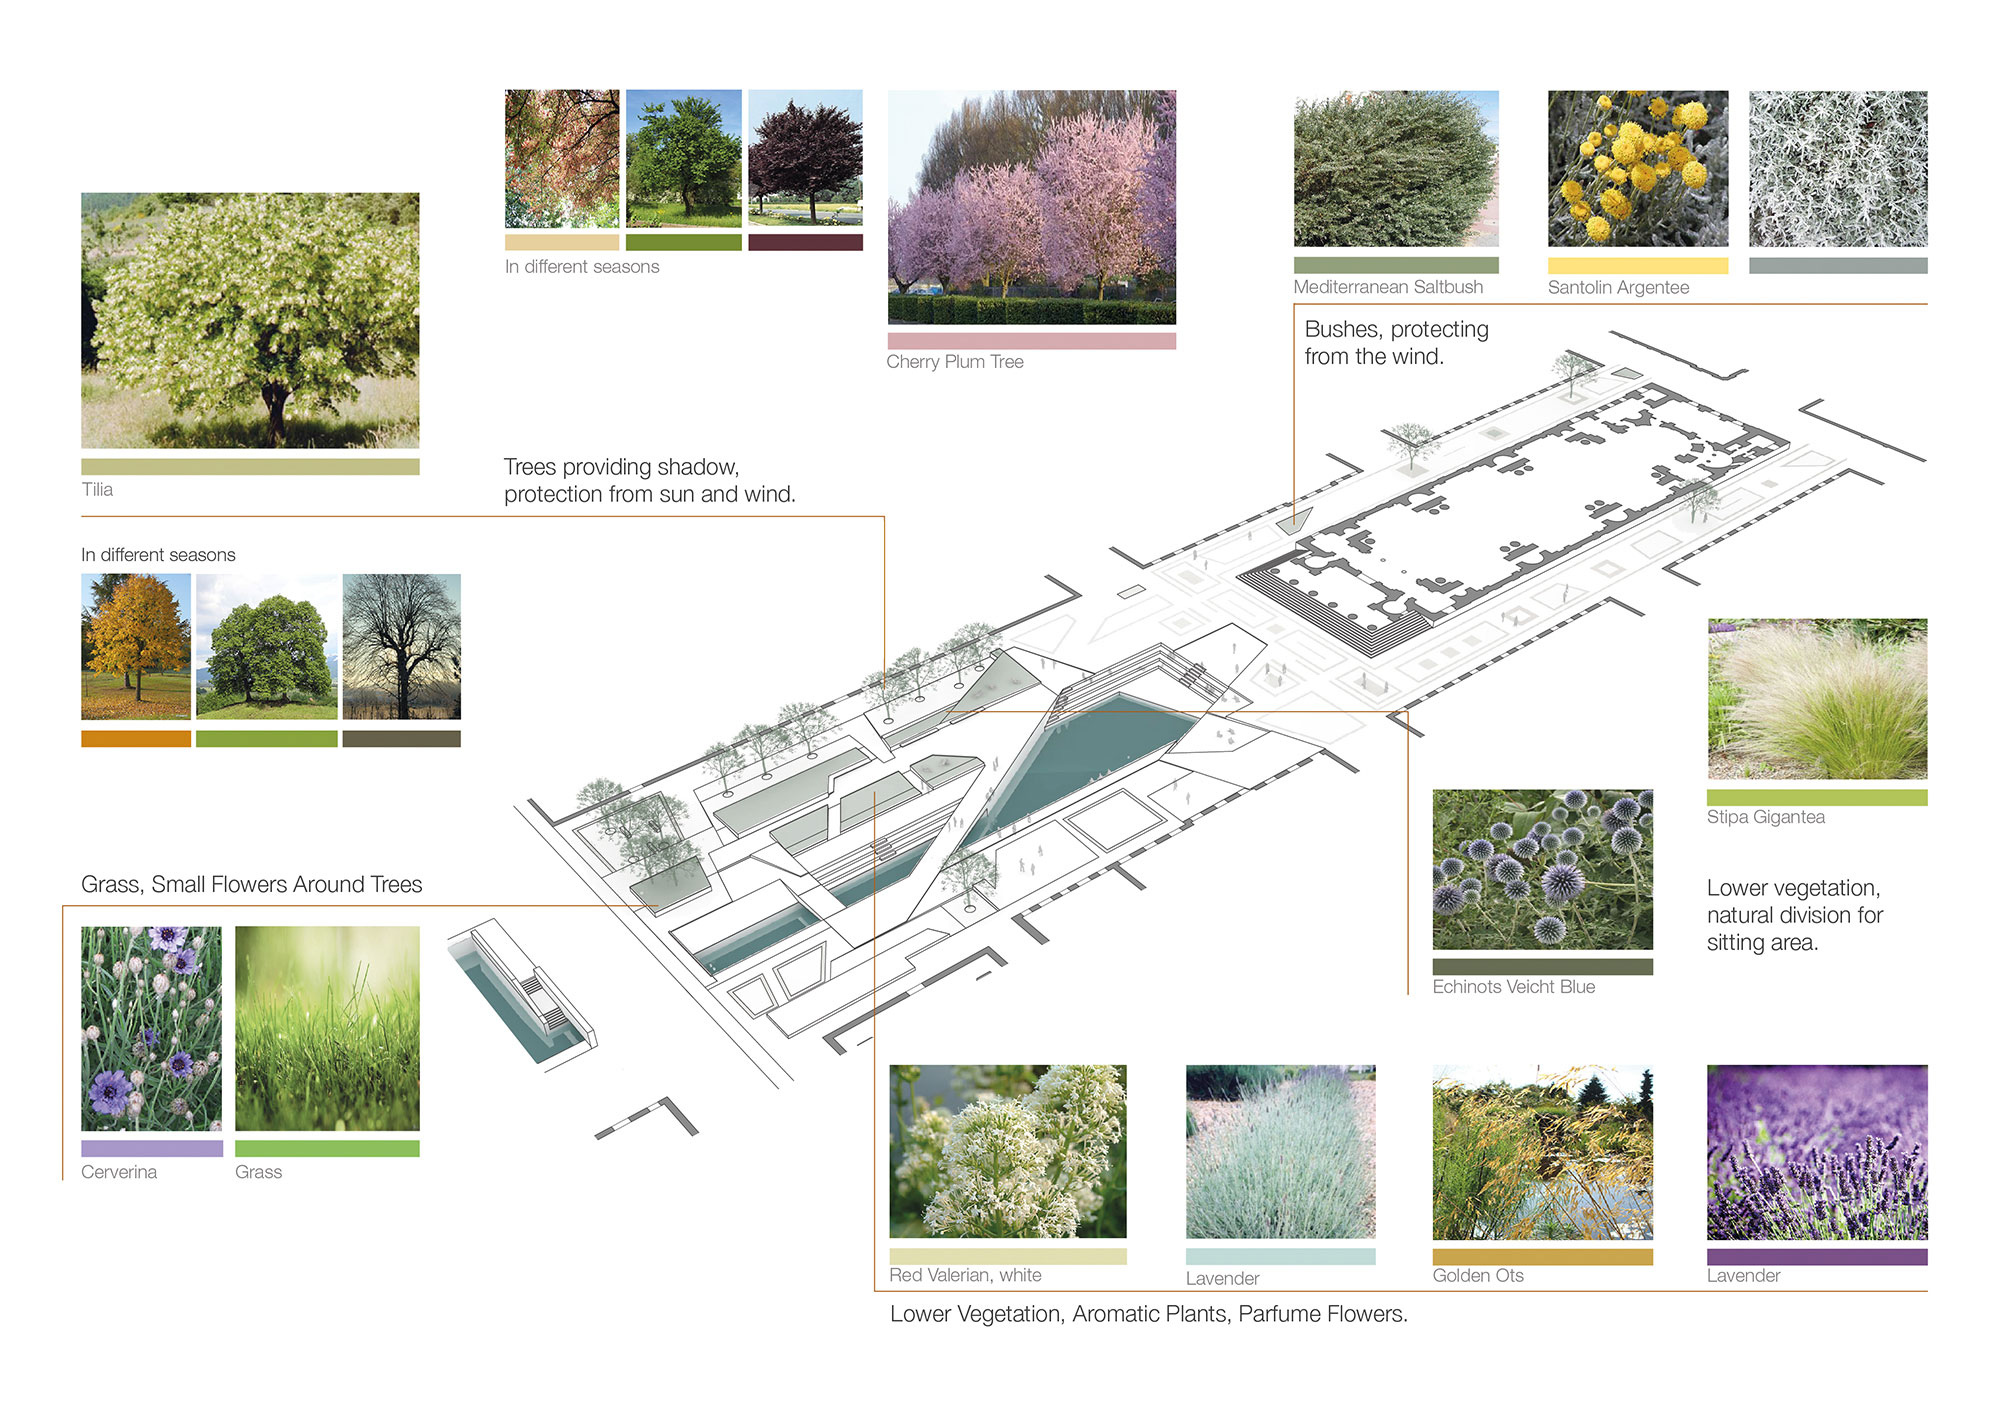 MCA_Sant Antonio Musicale_Vegetation diagram